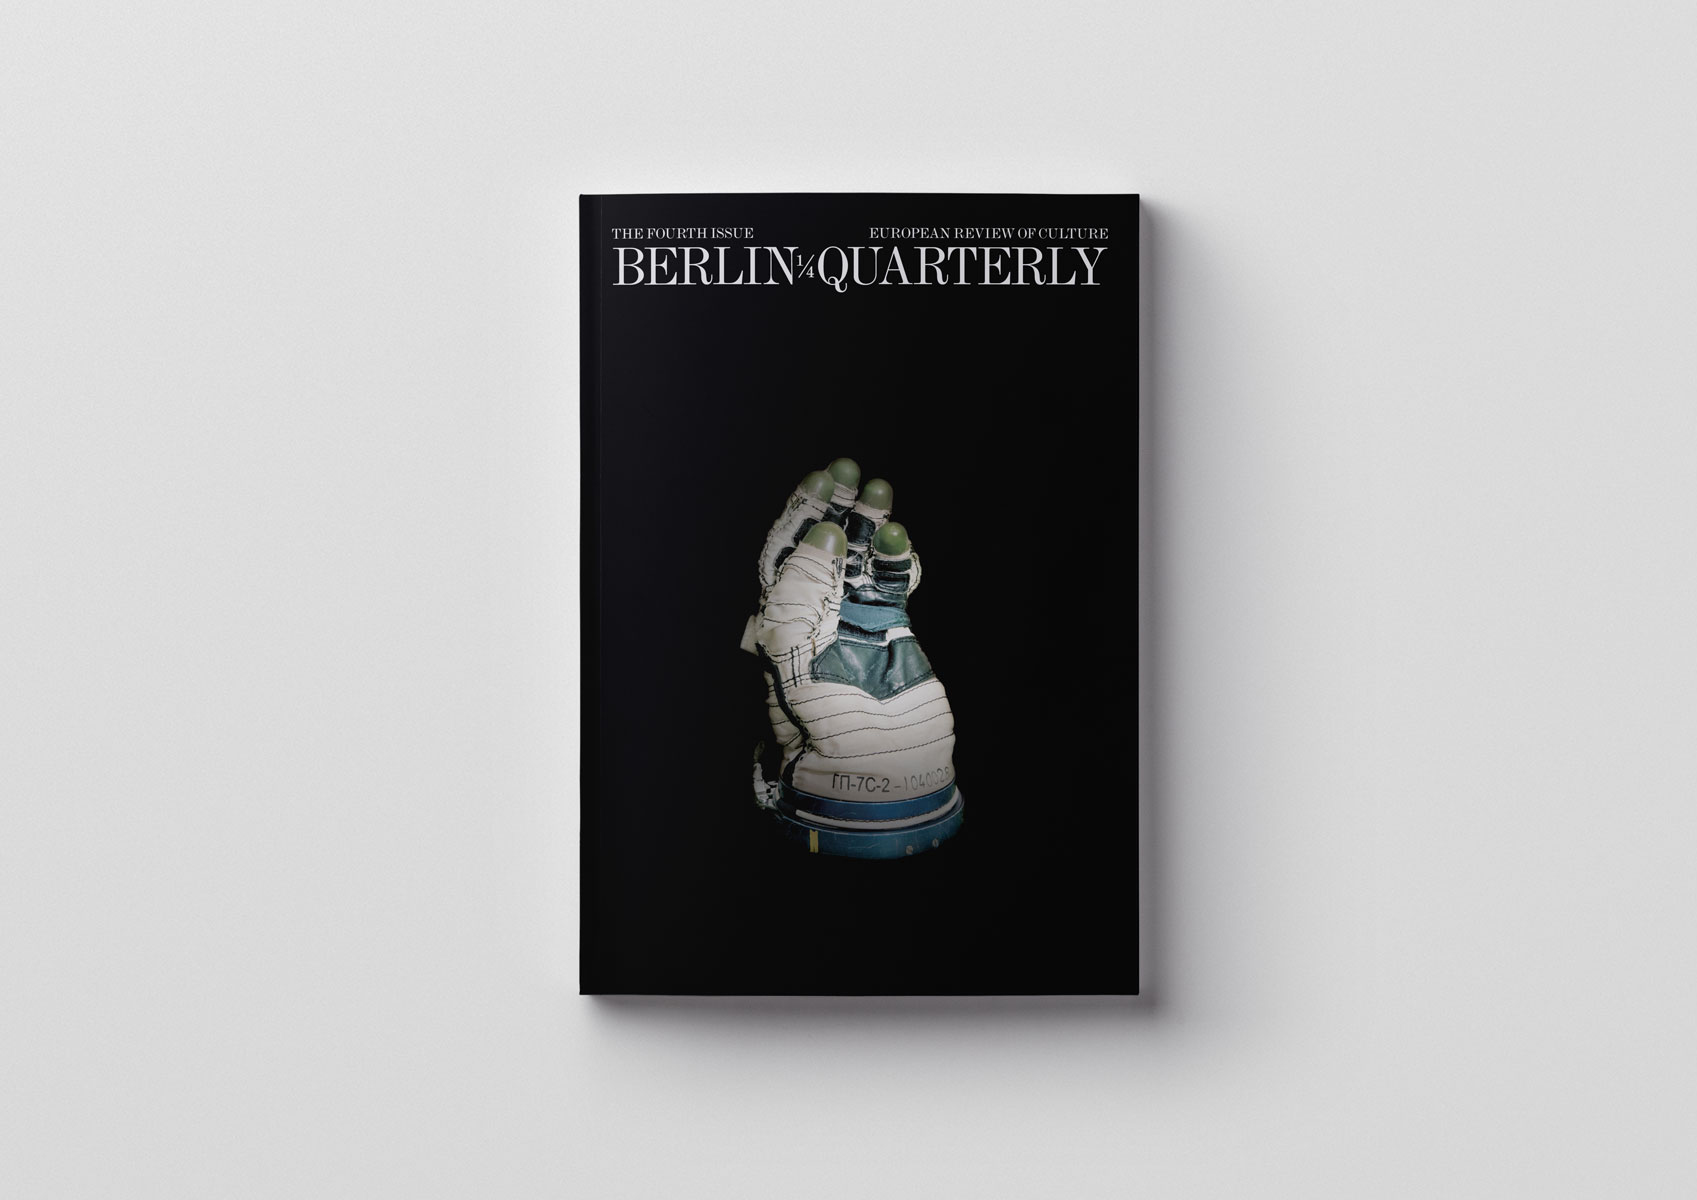 nicoletta-dalfino-berlin-quarterly-4-cover